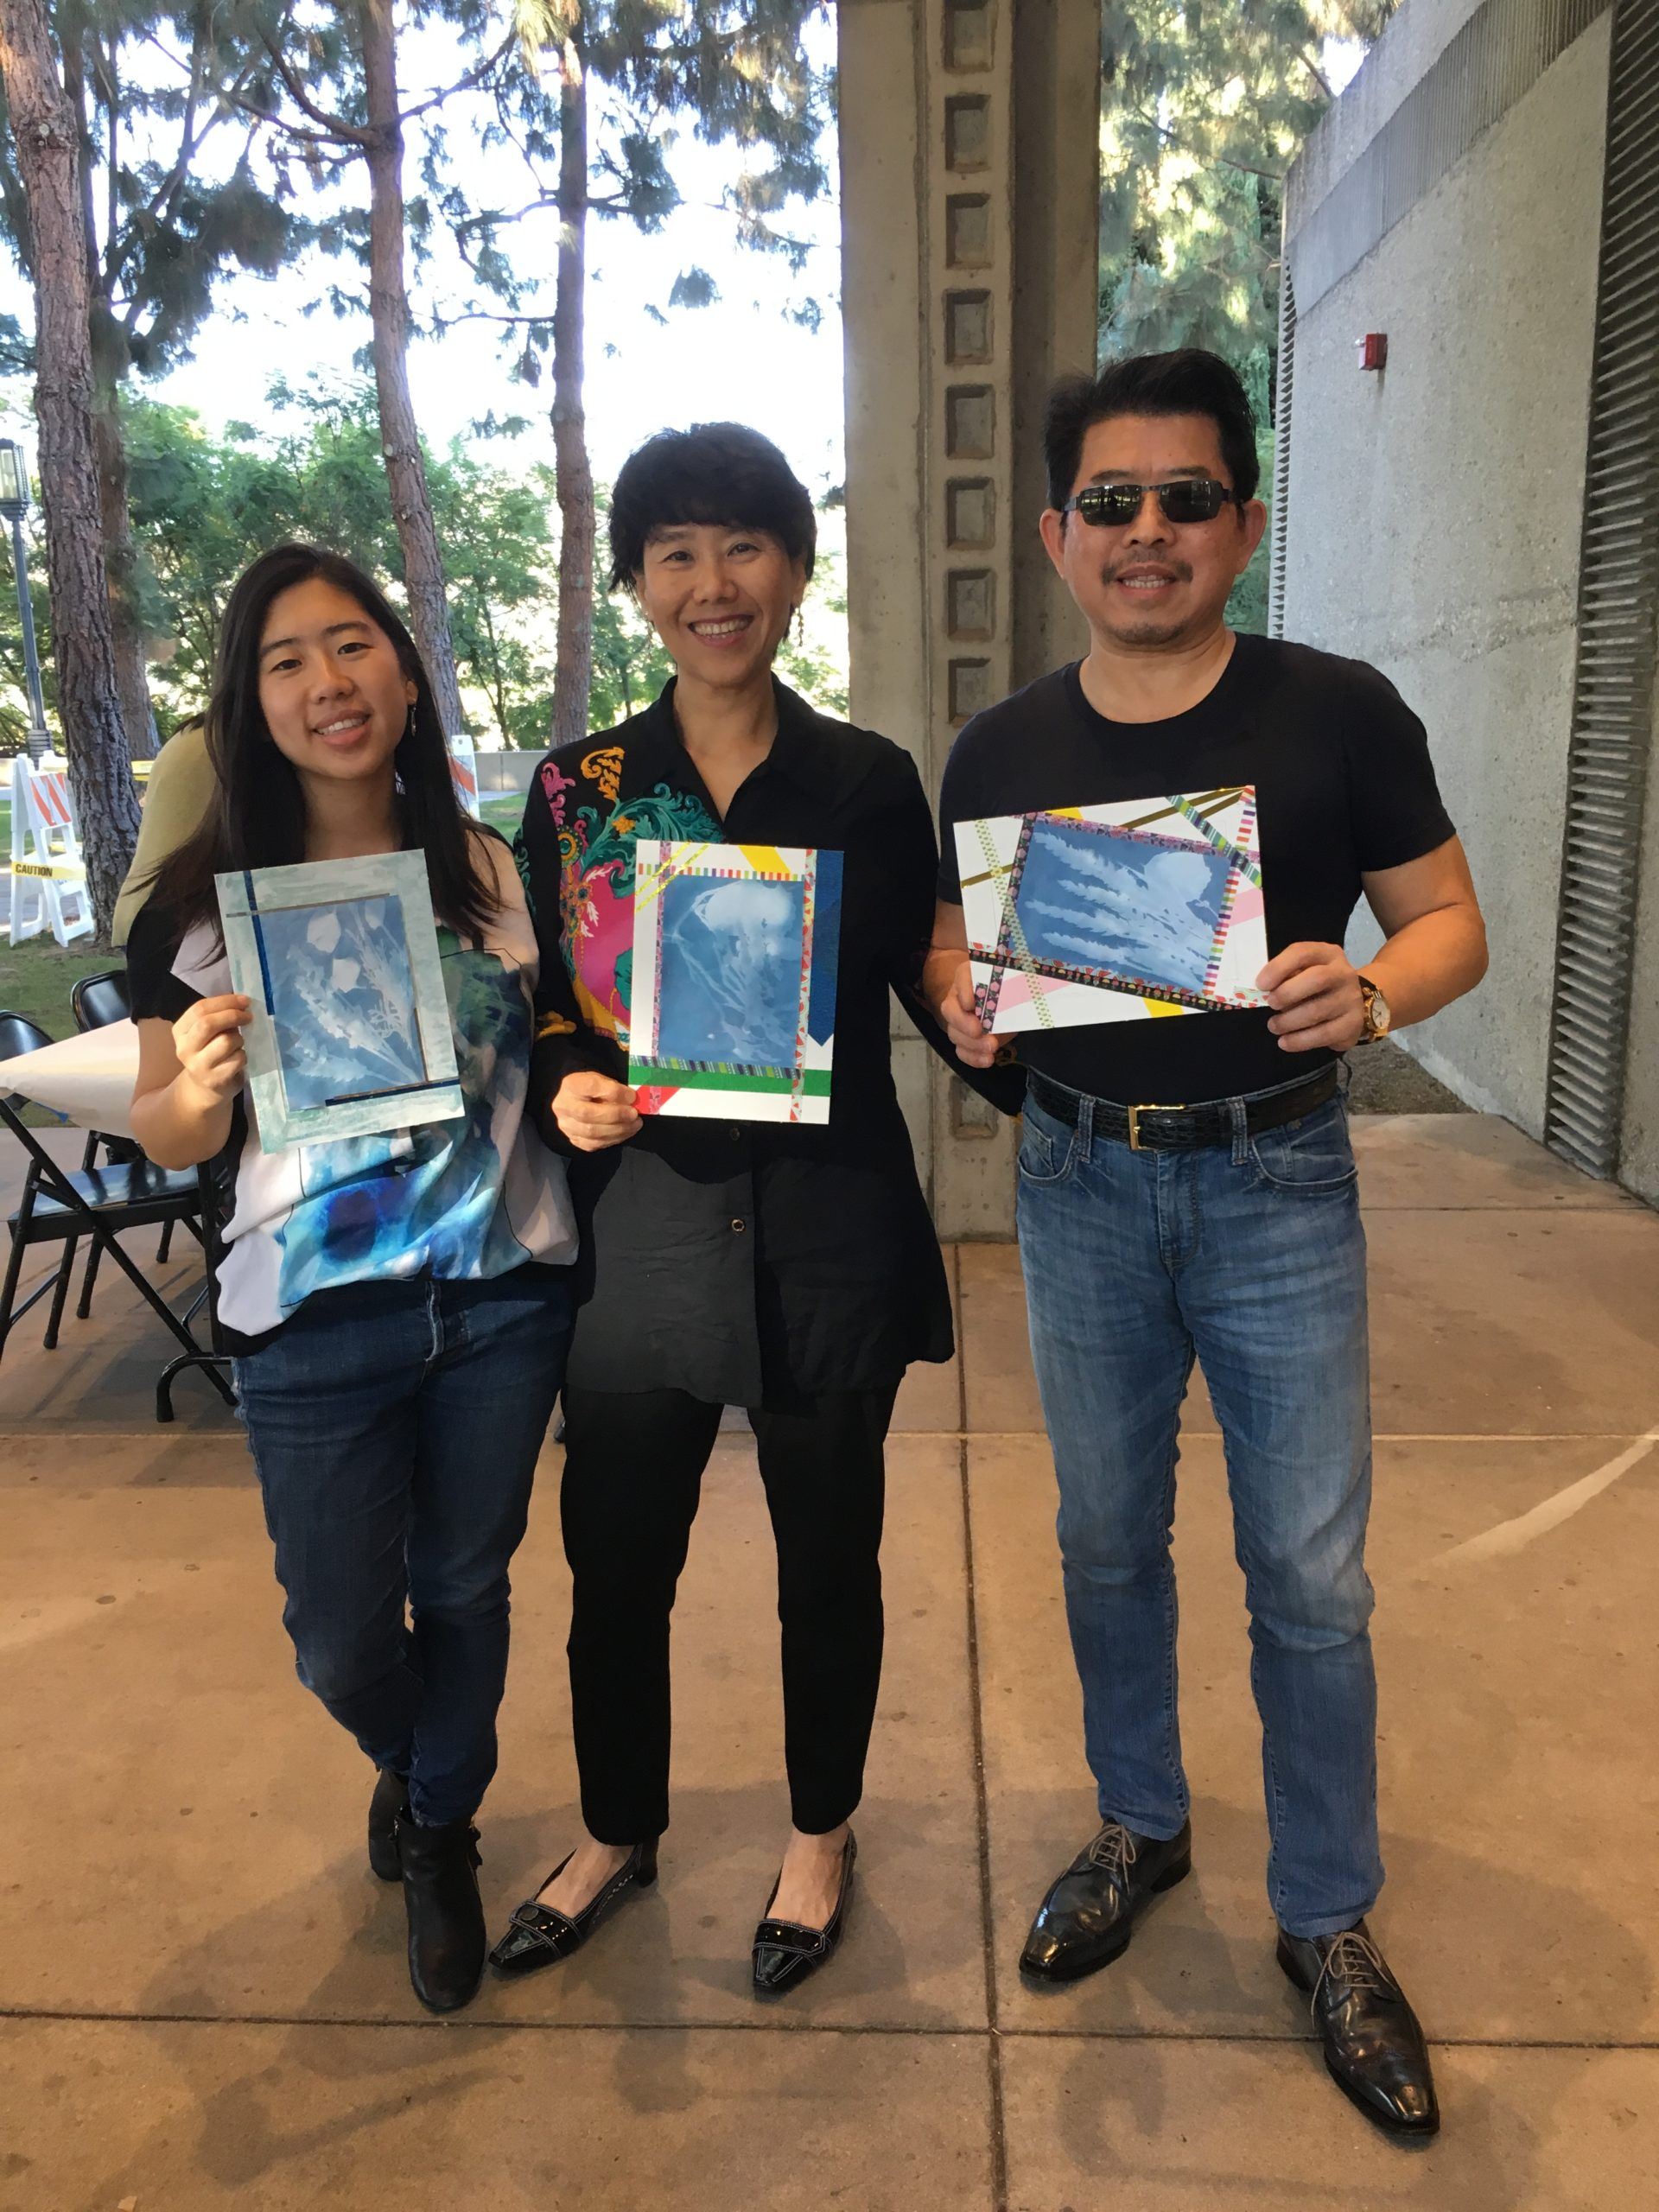 Three visitors are holding up their cyanotype artworks created during a public program.